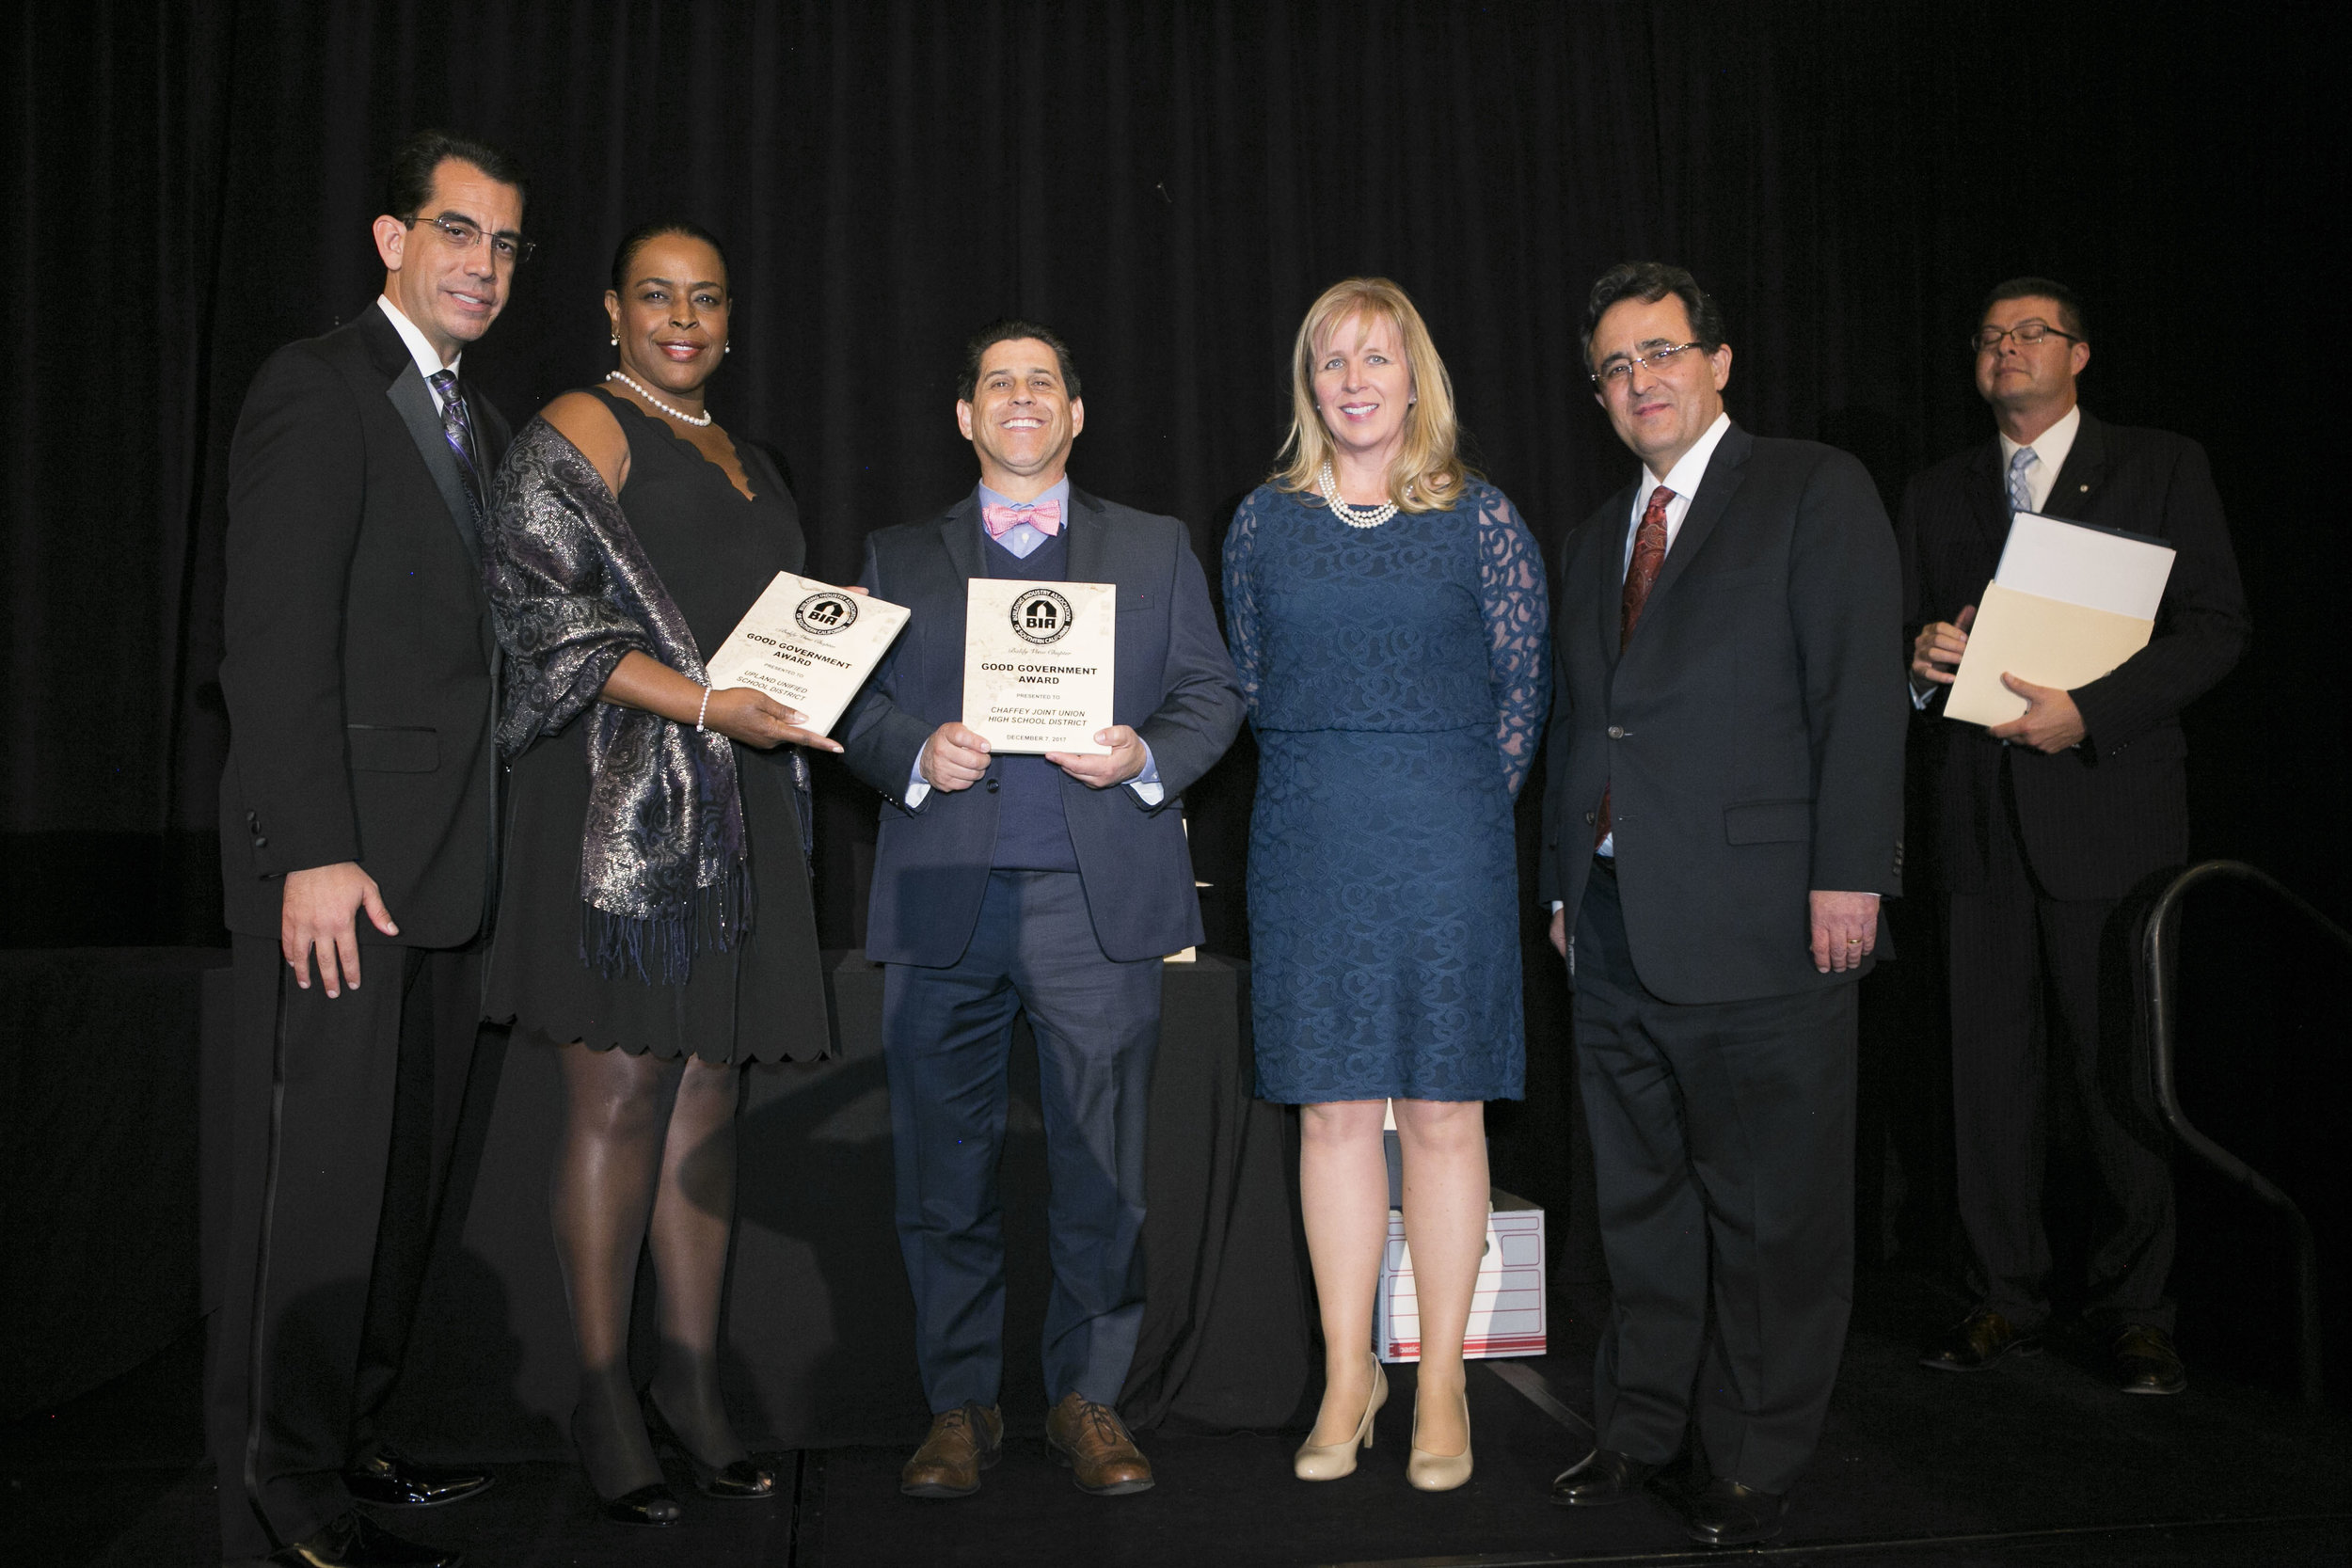 <b>GOOD GOVERNMENT AWARD</b><br>Chaffey Joint Union High School District & Upland Unified School District